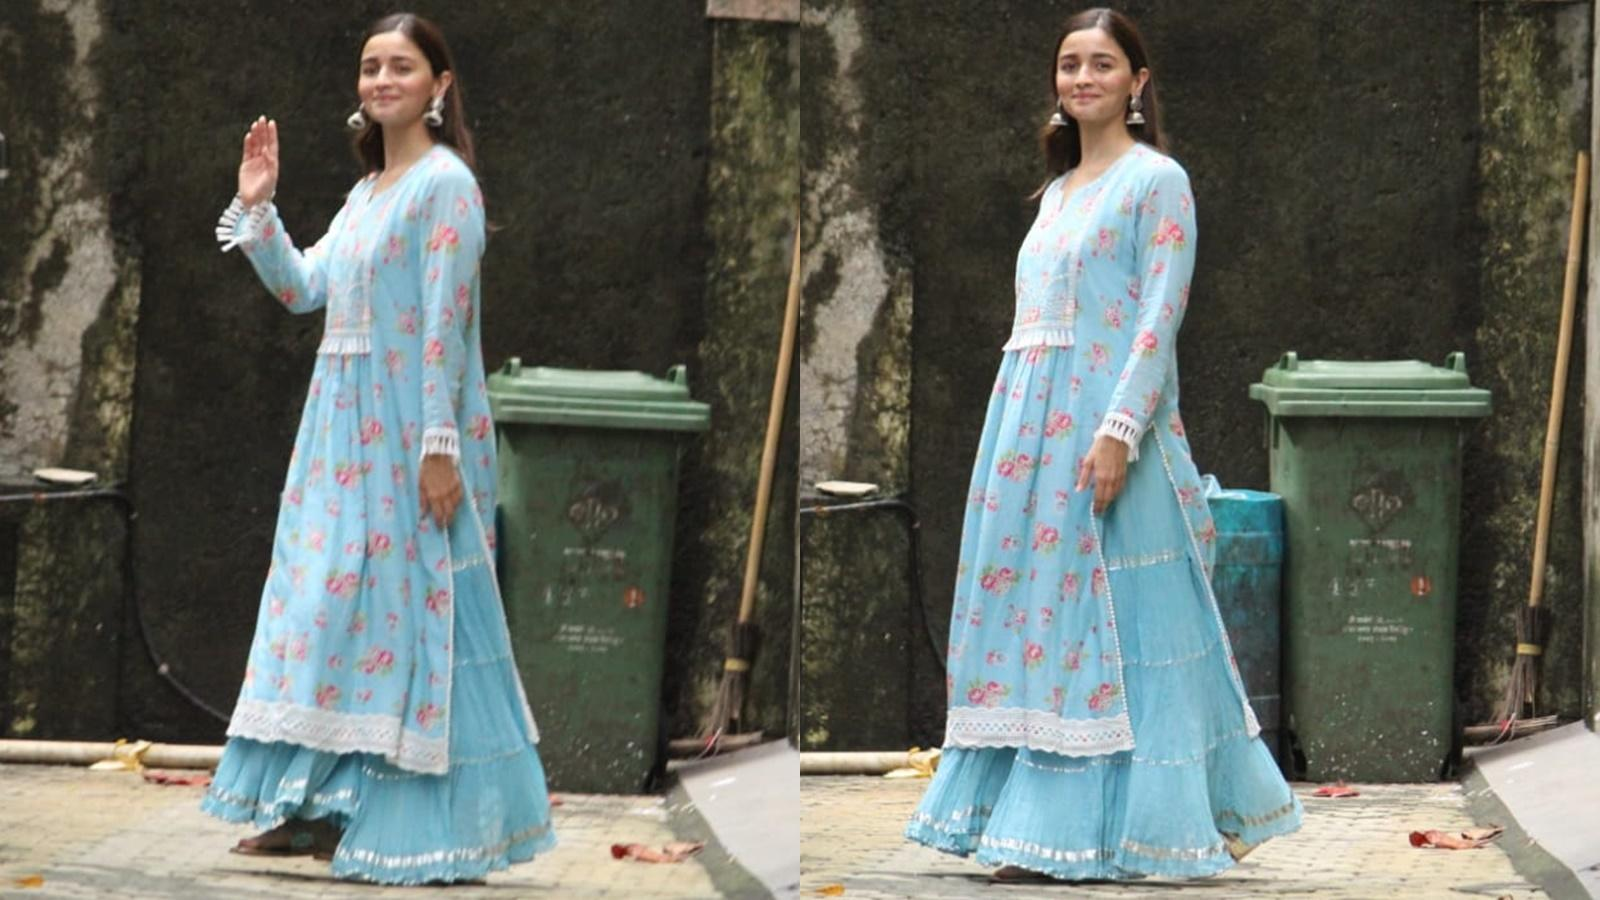 alia-bhatts-blue-ethnic-ensemble-is-a-wardrobe-must-have